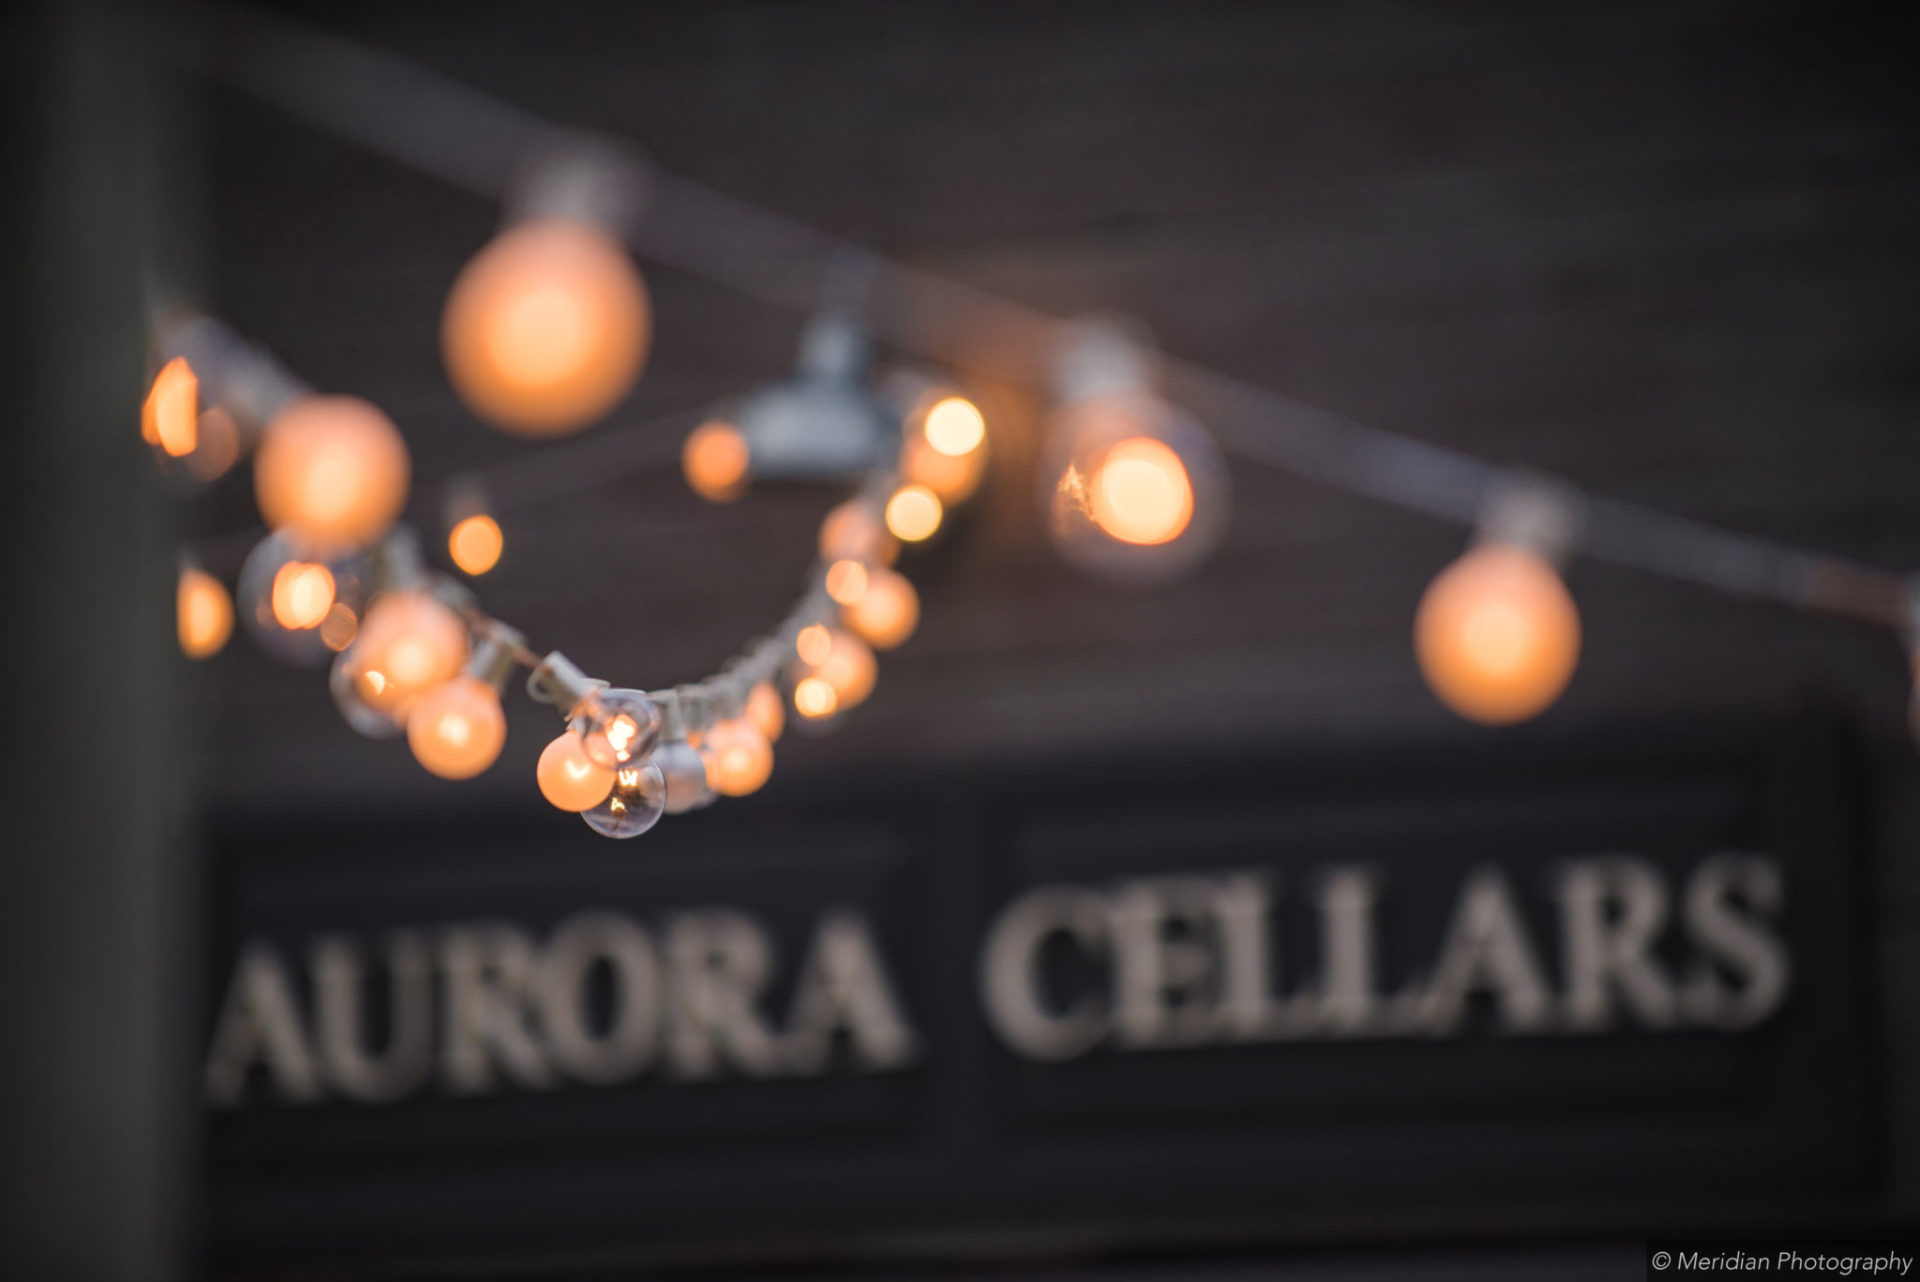 aurora cellars winery